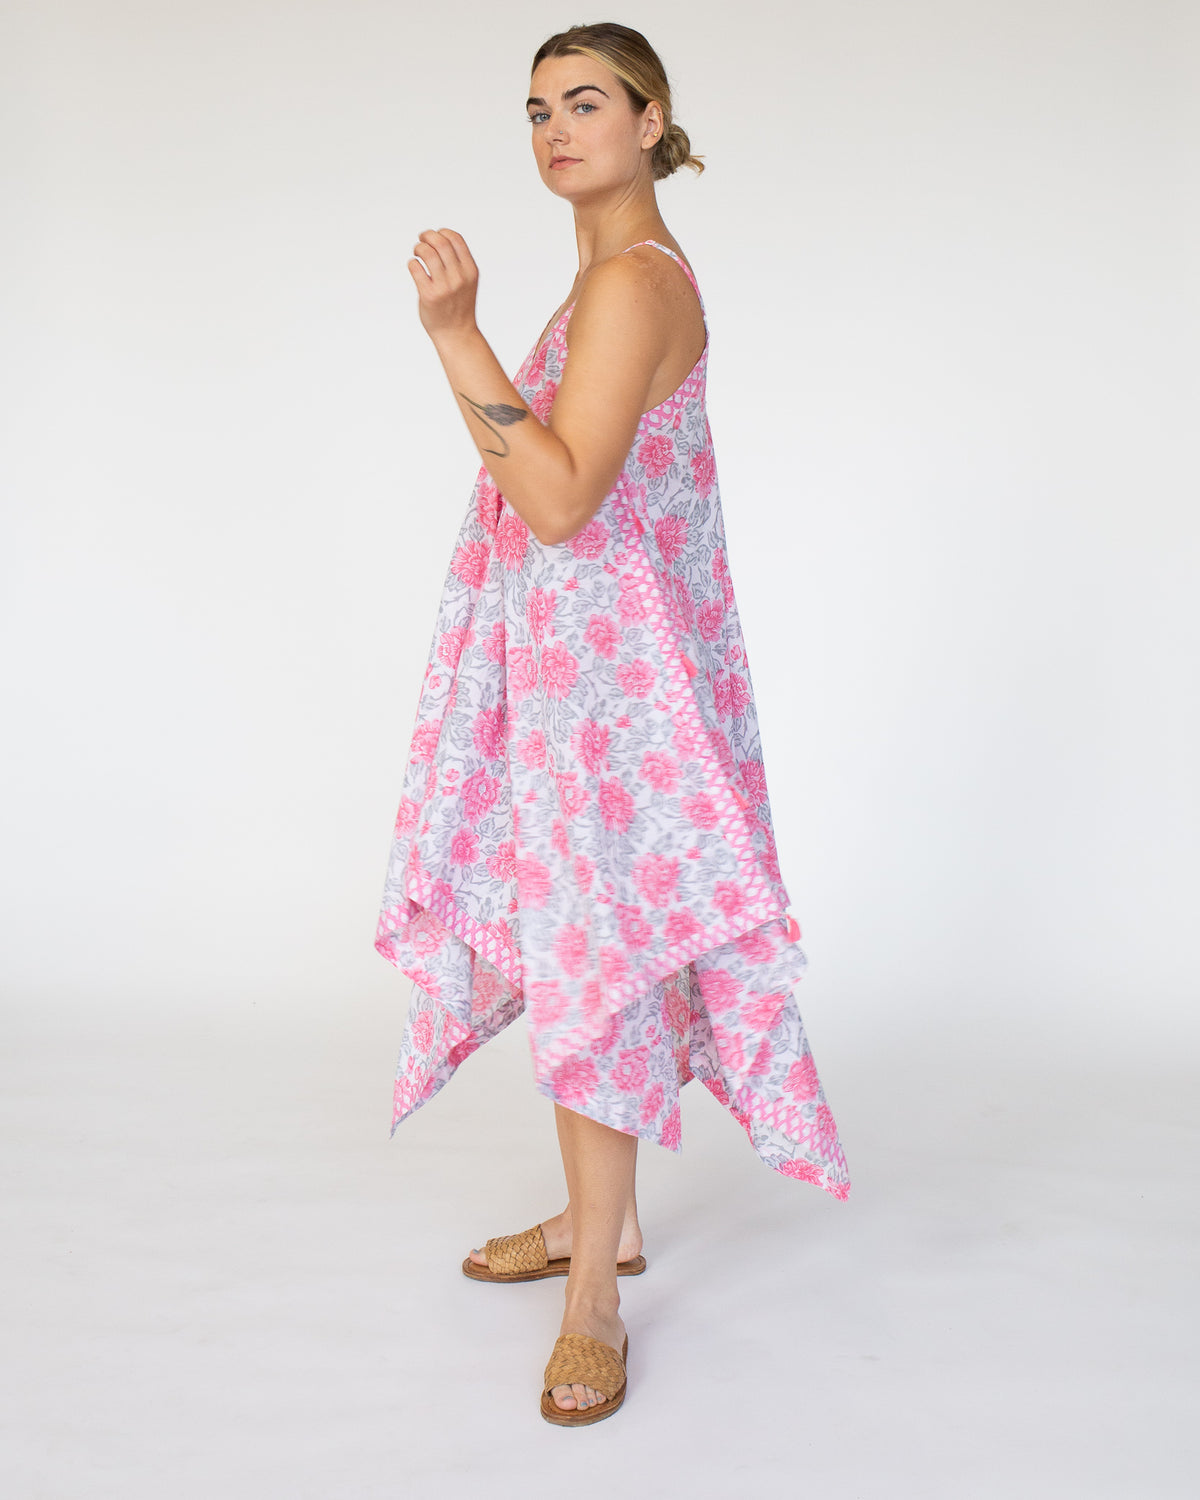 Handkerchief Cover Up Dress | Dusk Floral